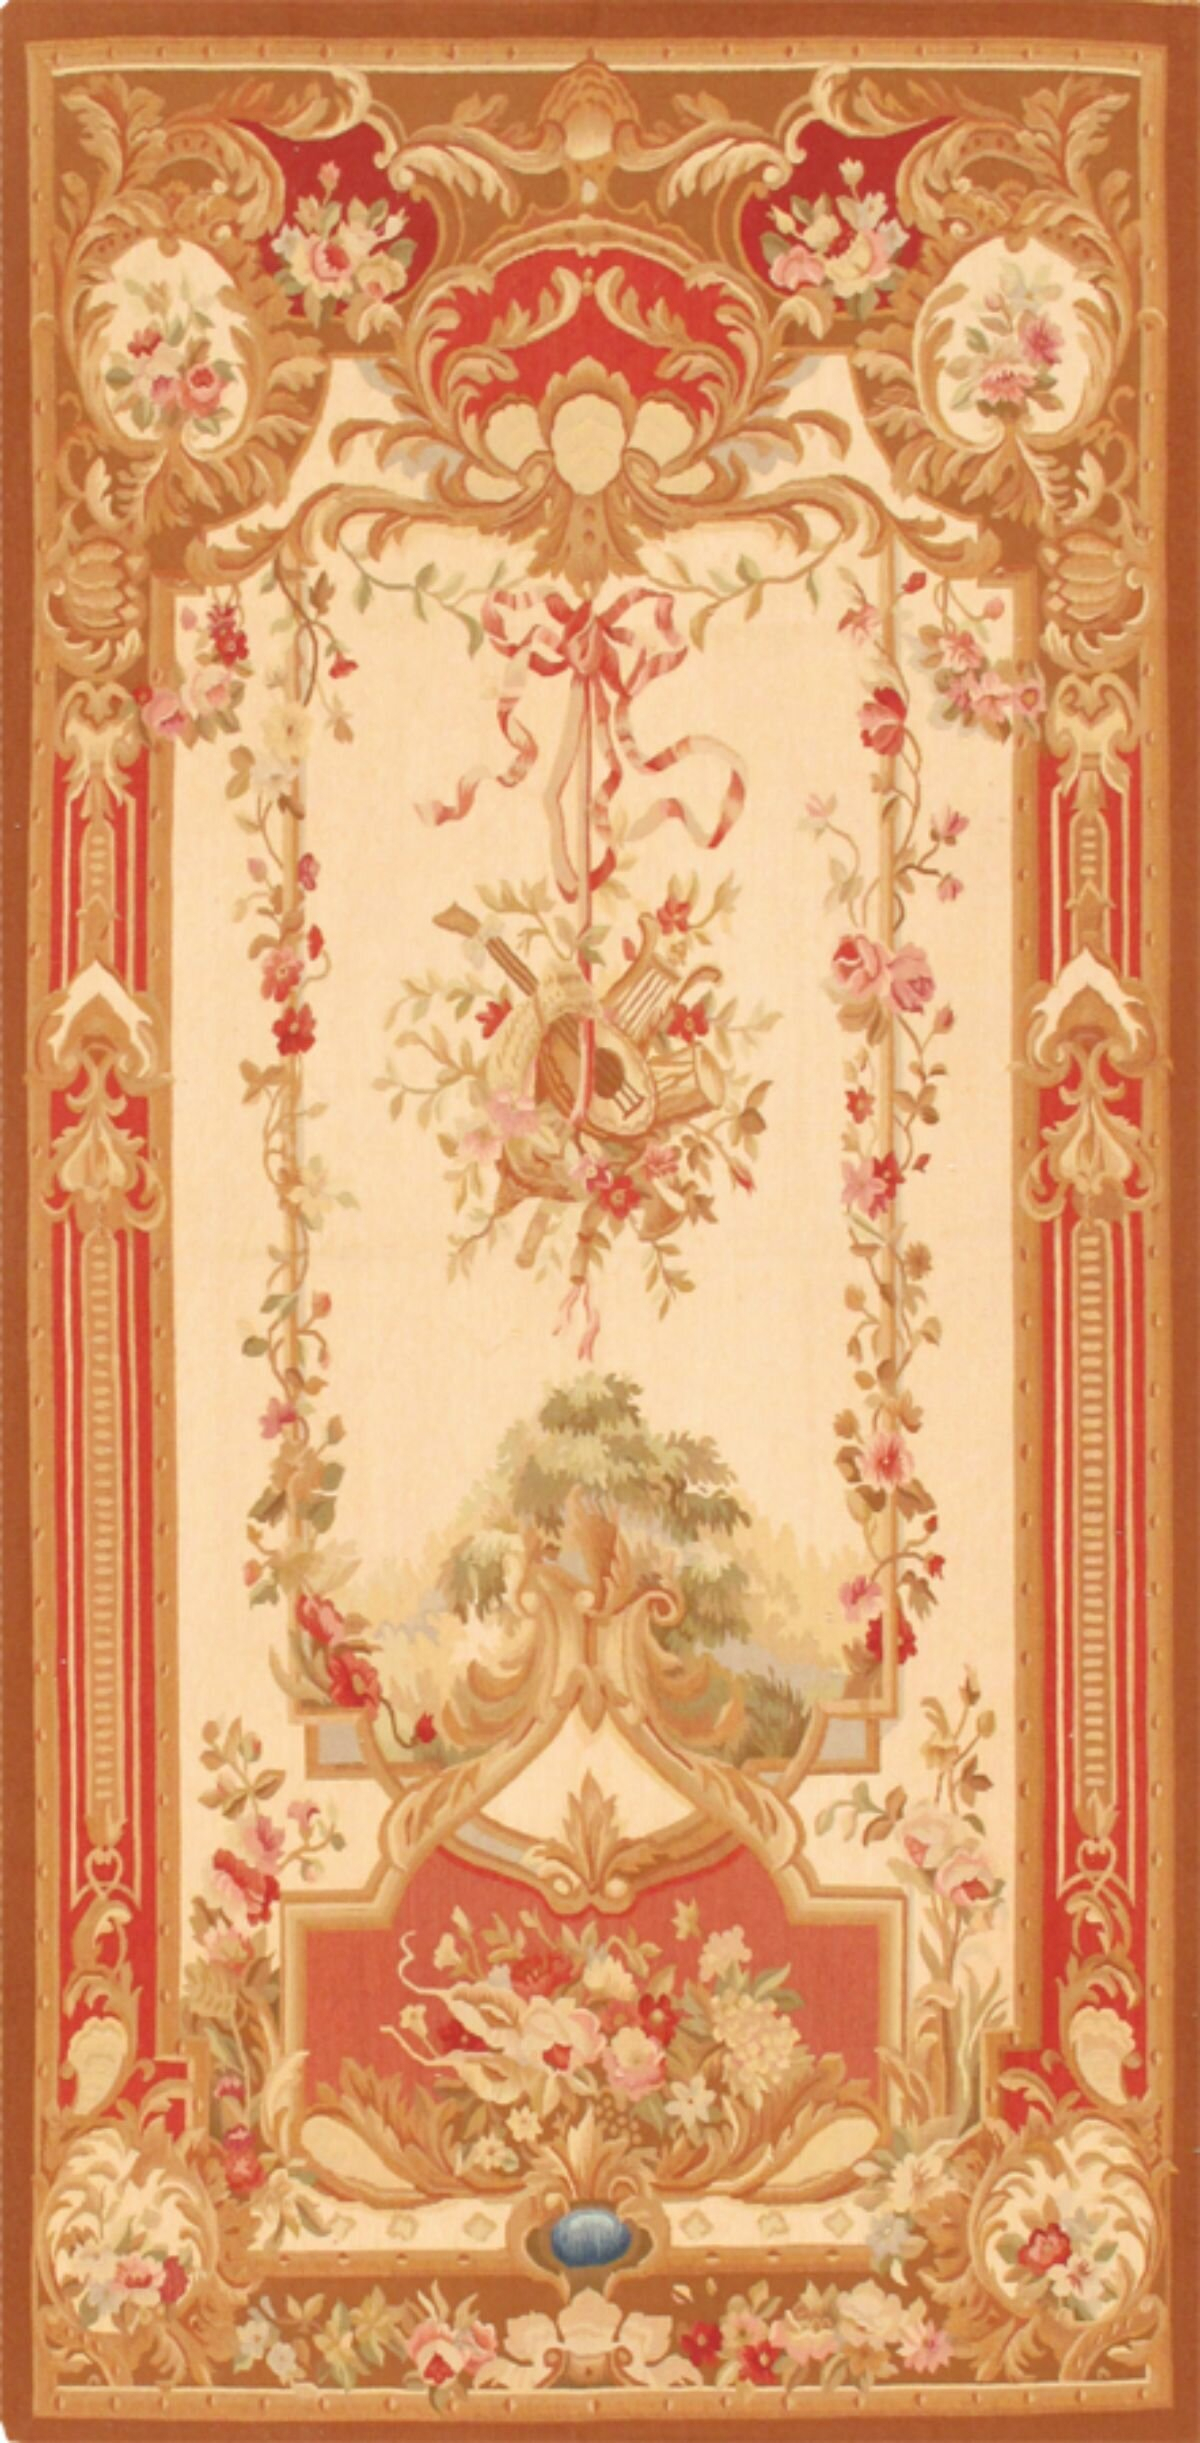 Tapestry In Recent Blended Fabric Havenwood Chinoiserie Tapestries Rod Included (View 4 of 20)